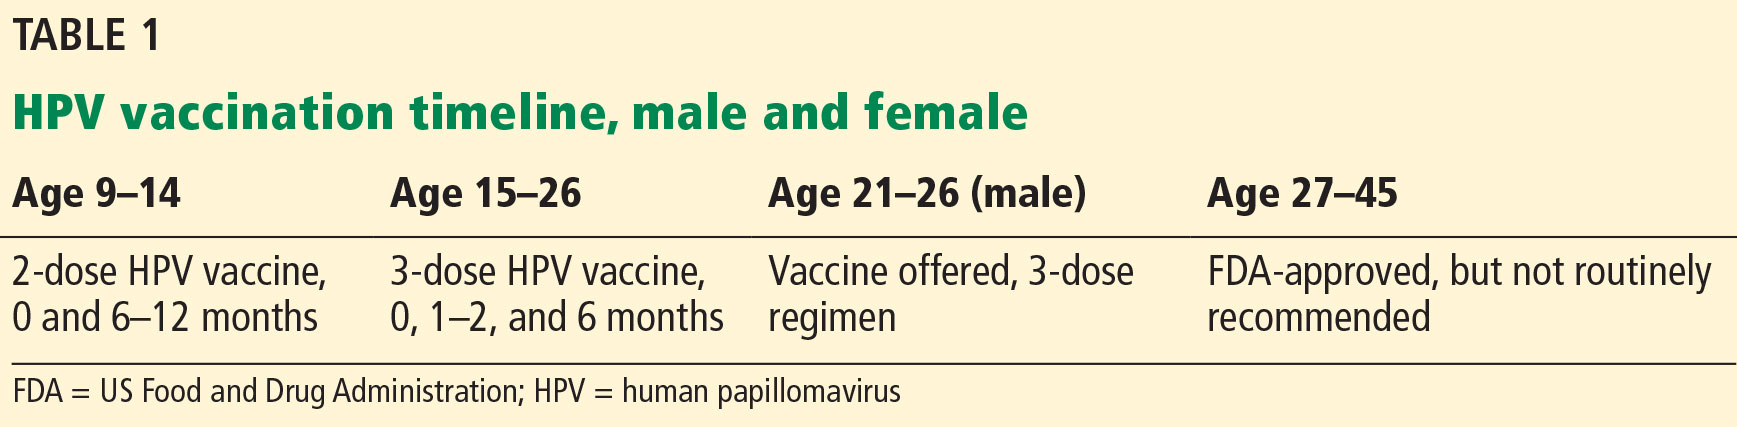 hpv vaccine new guidelines